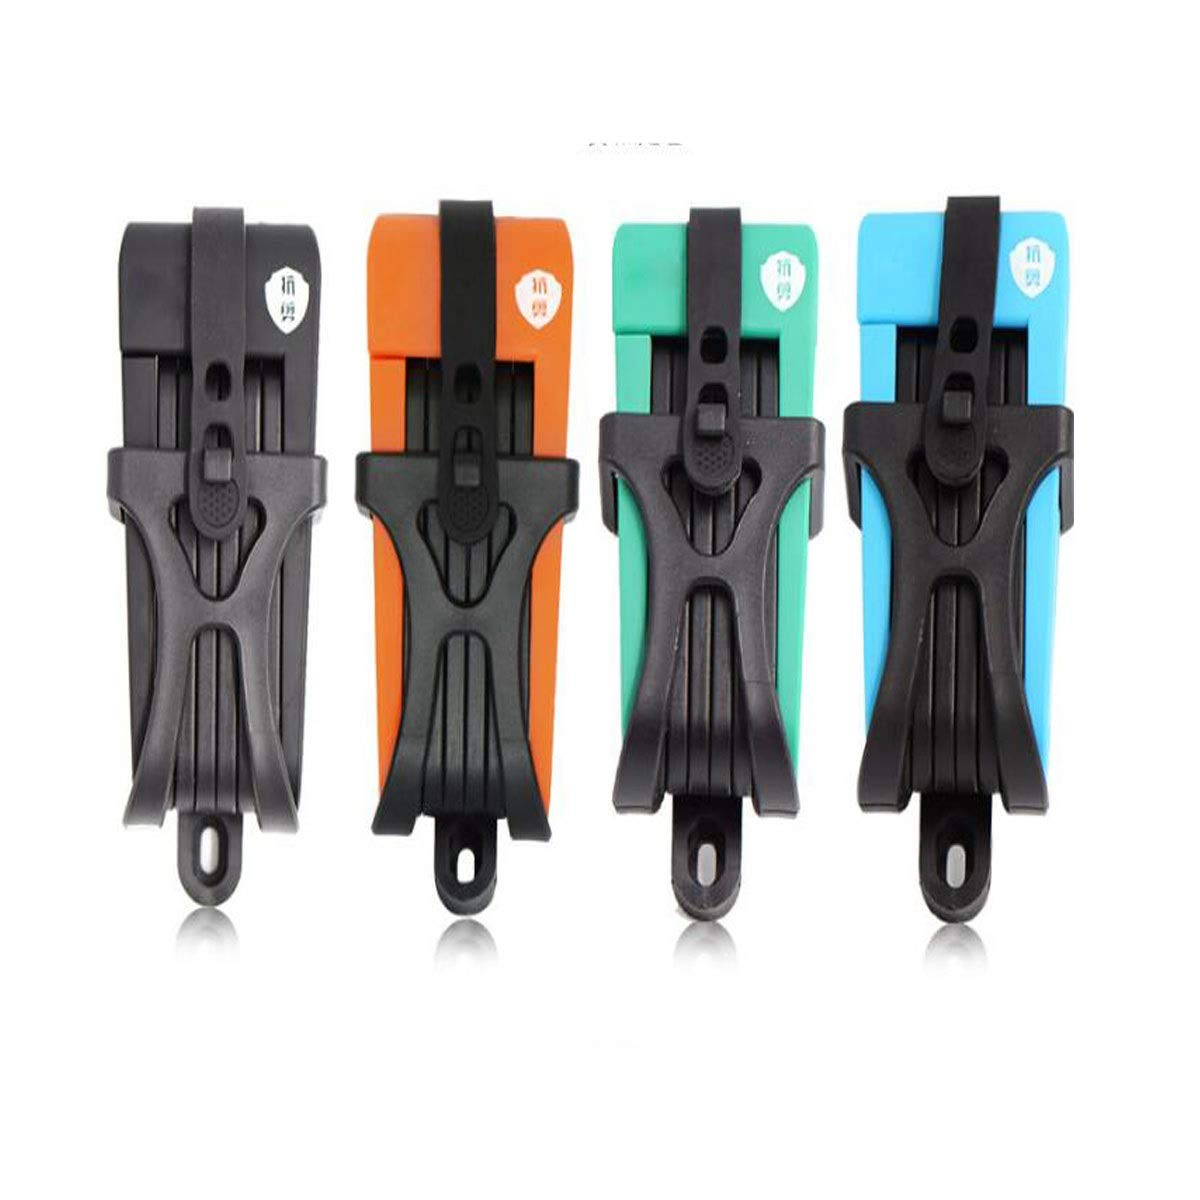 8haowenju Comfortable and Practical Lock - Chain Lock, Lightweight Lightweight Bicycle Lock, Size: 2.82.85.2 Inches, Color: Black, Green, Orange (Color : Black)